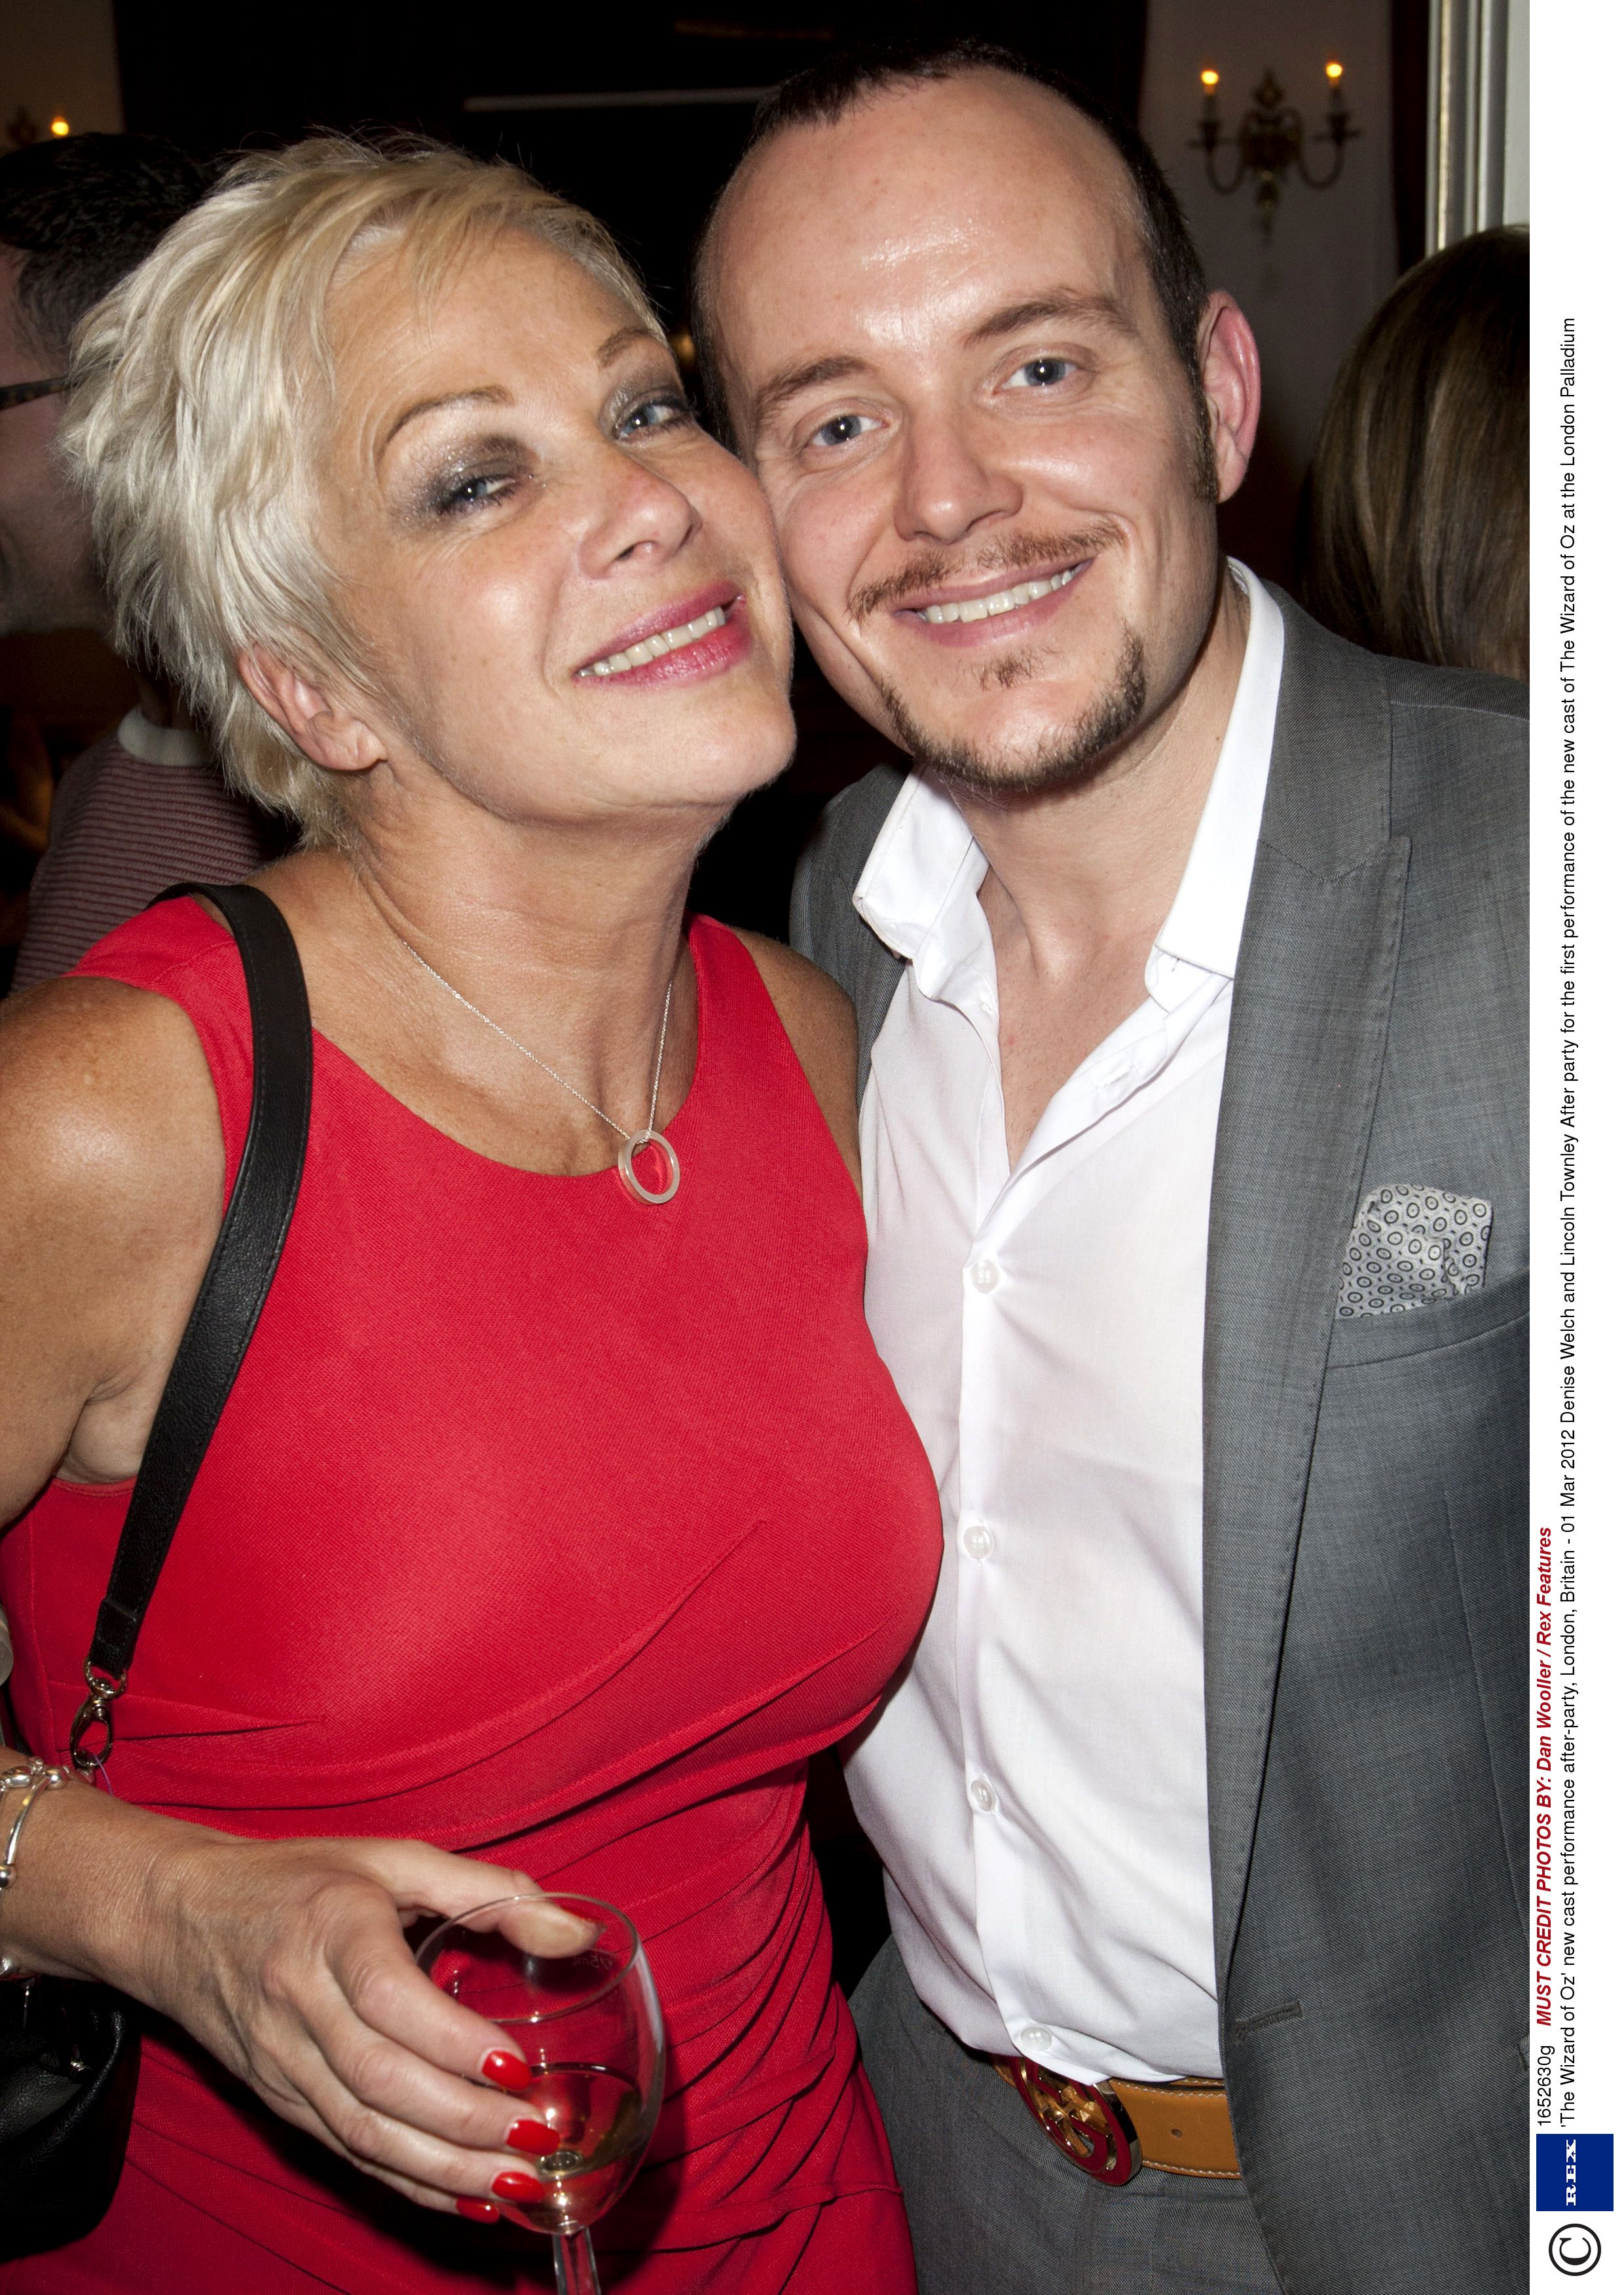 Denise Welch S Ex Husband Tim Healy We Will Always Love Each Other